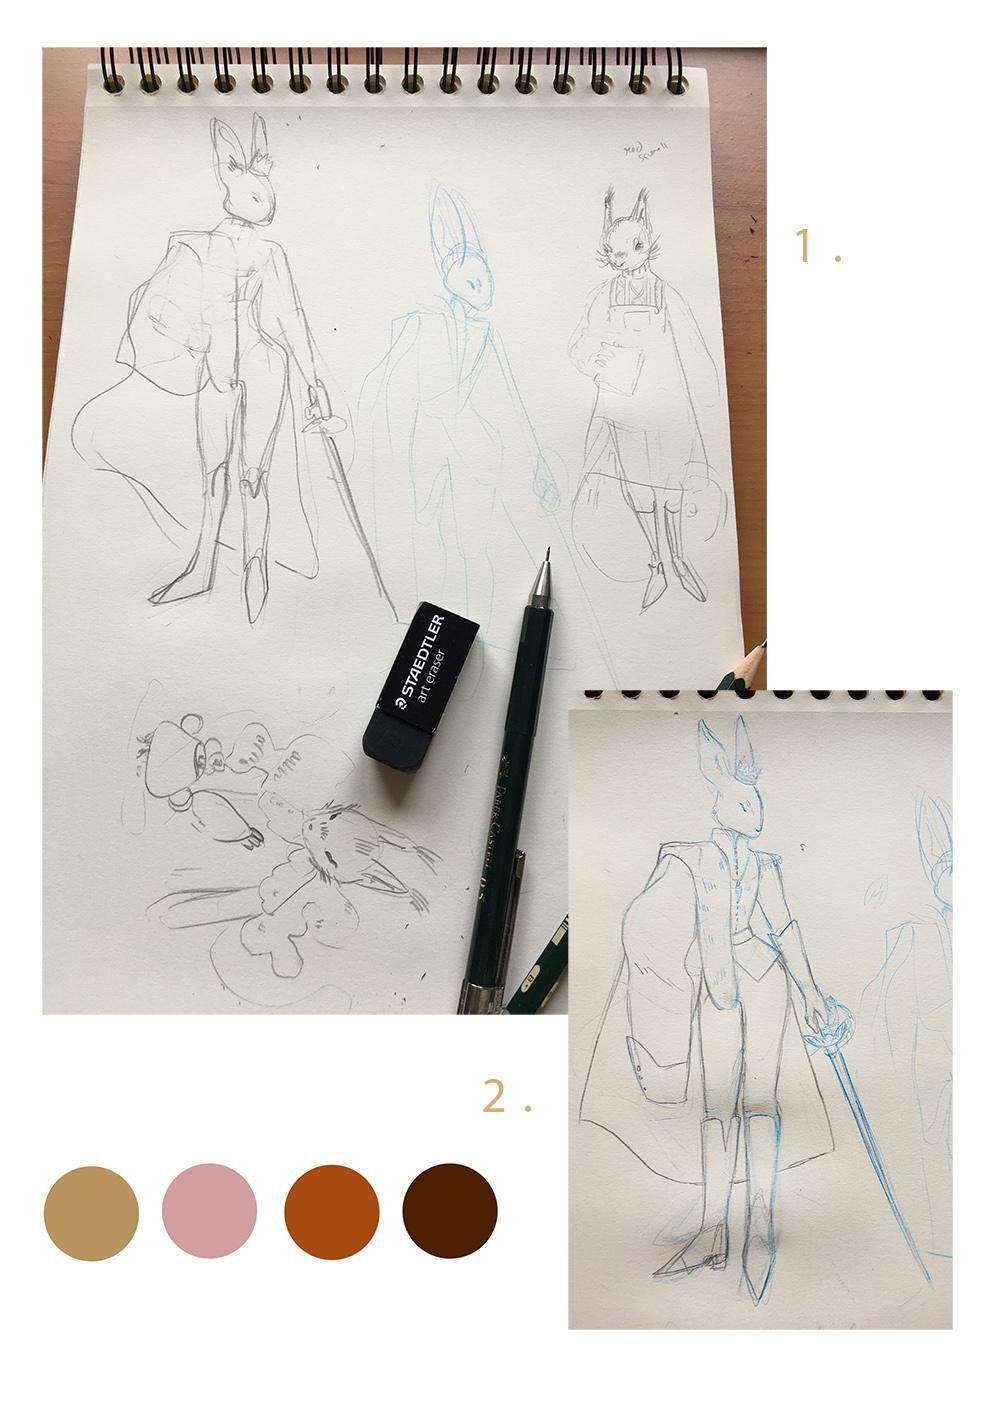 Bunny Prince - image 1 - student project